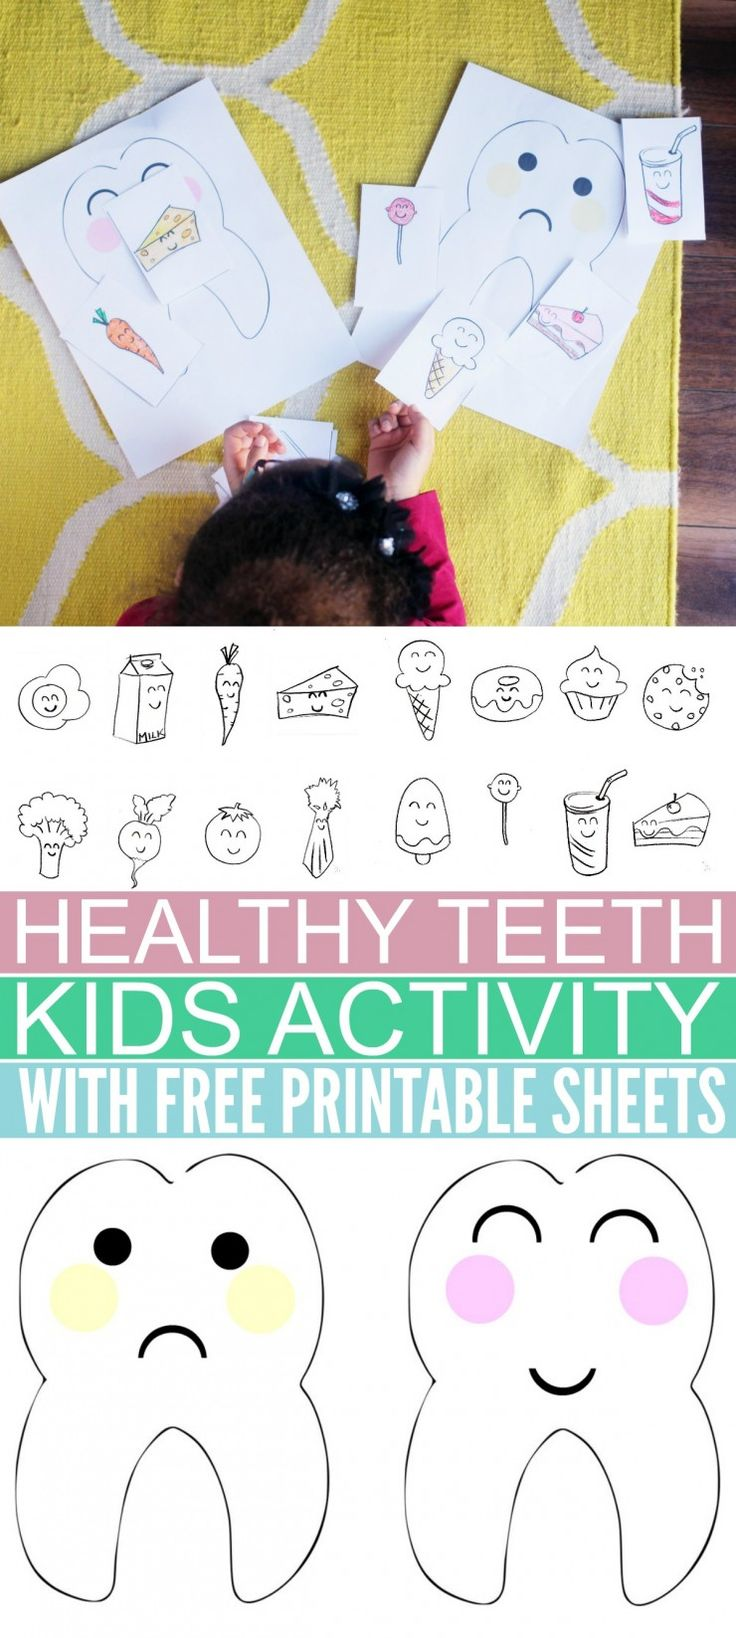 15 Mustsee Kids Activity Sheets